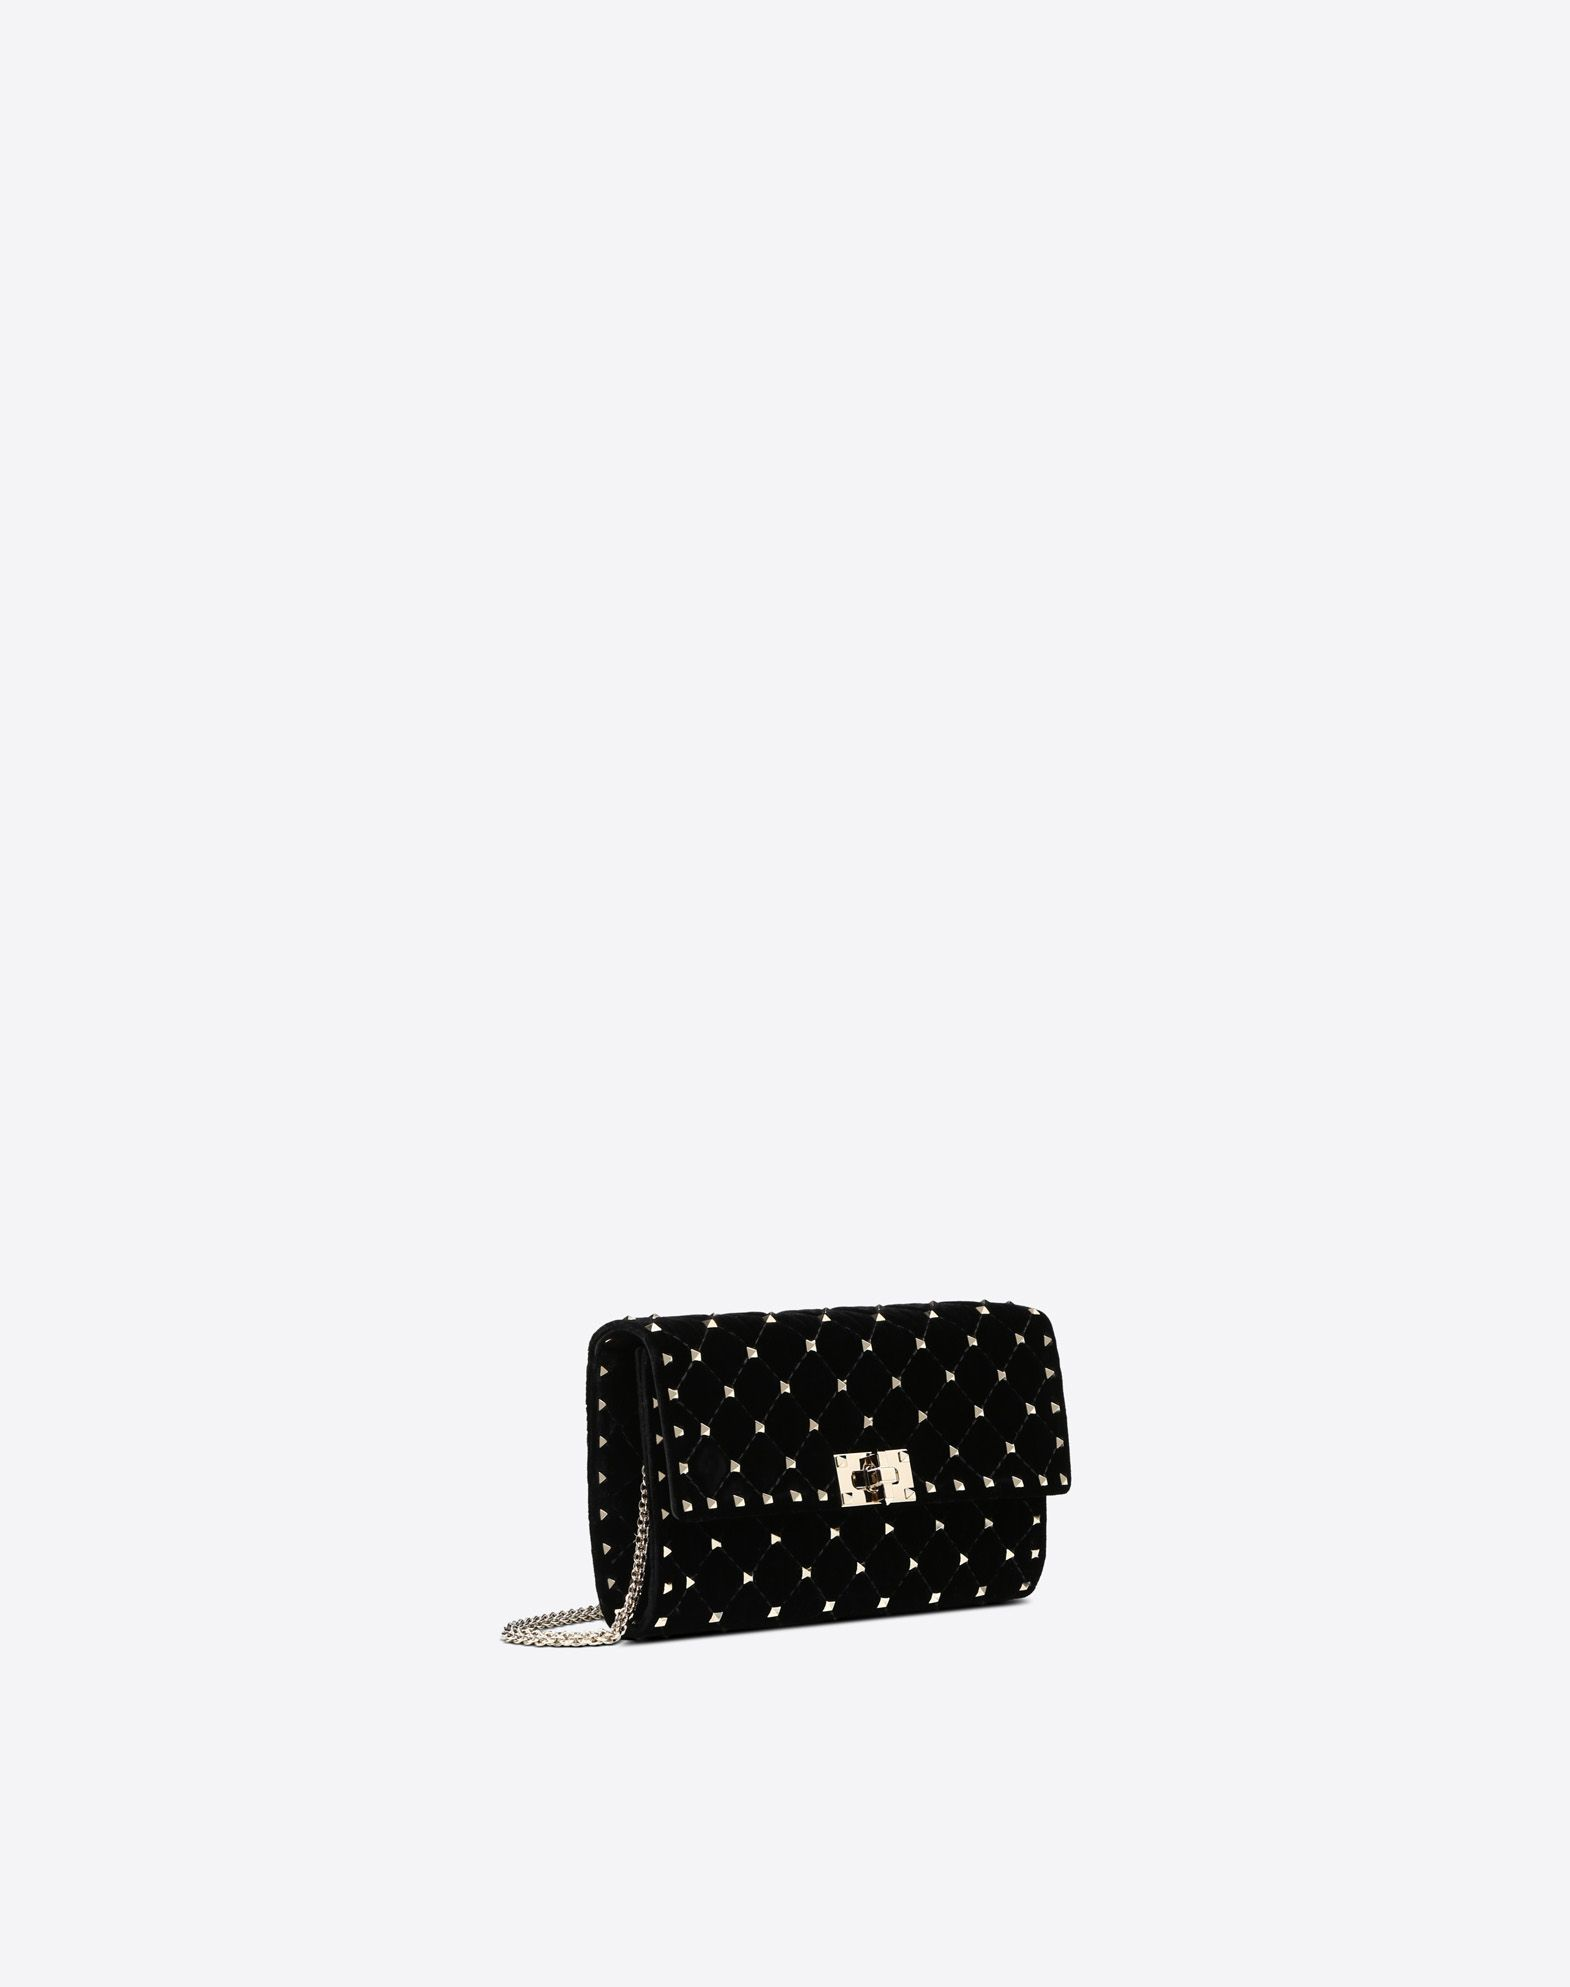 VALENTINO GARAVANI Rockstud Spike Chain Bag CROSS BODY BAG D r